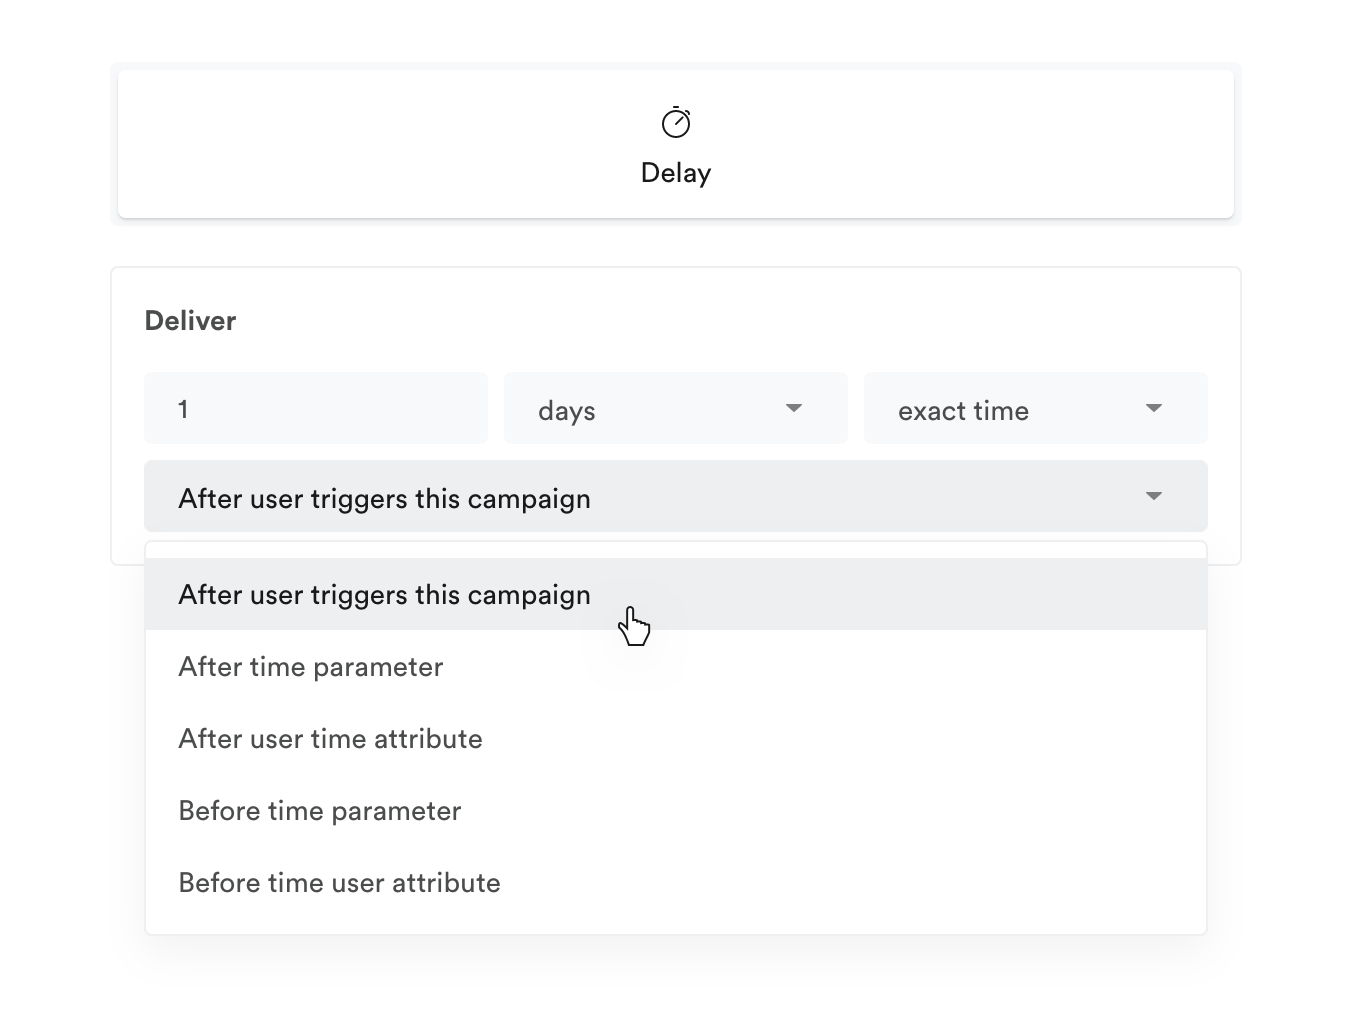 Delay based on trigger event parameter or user attribute